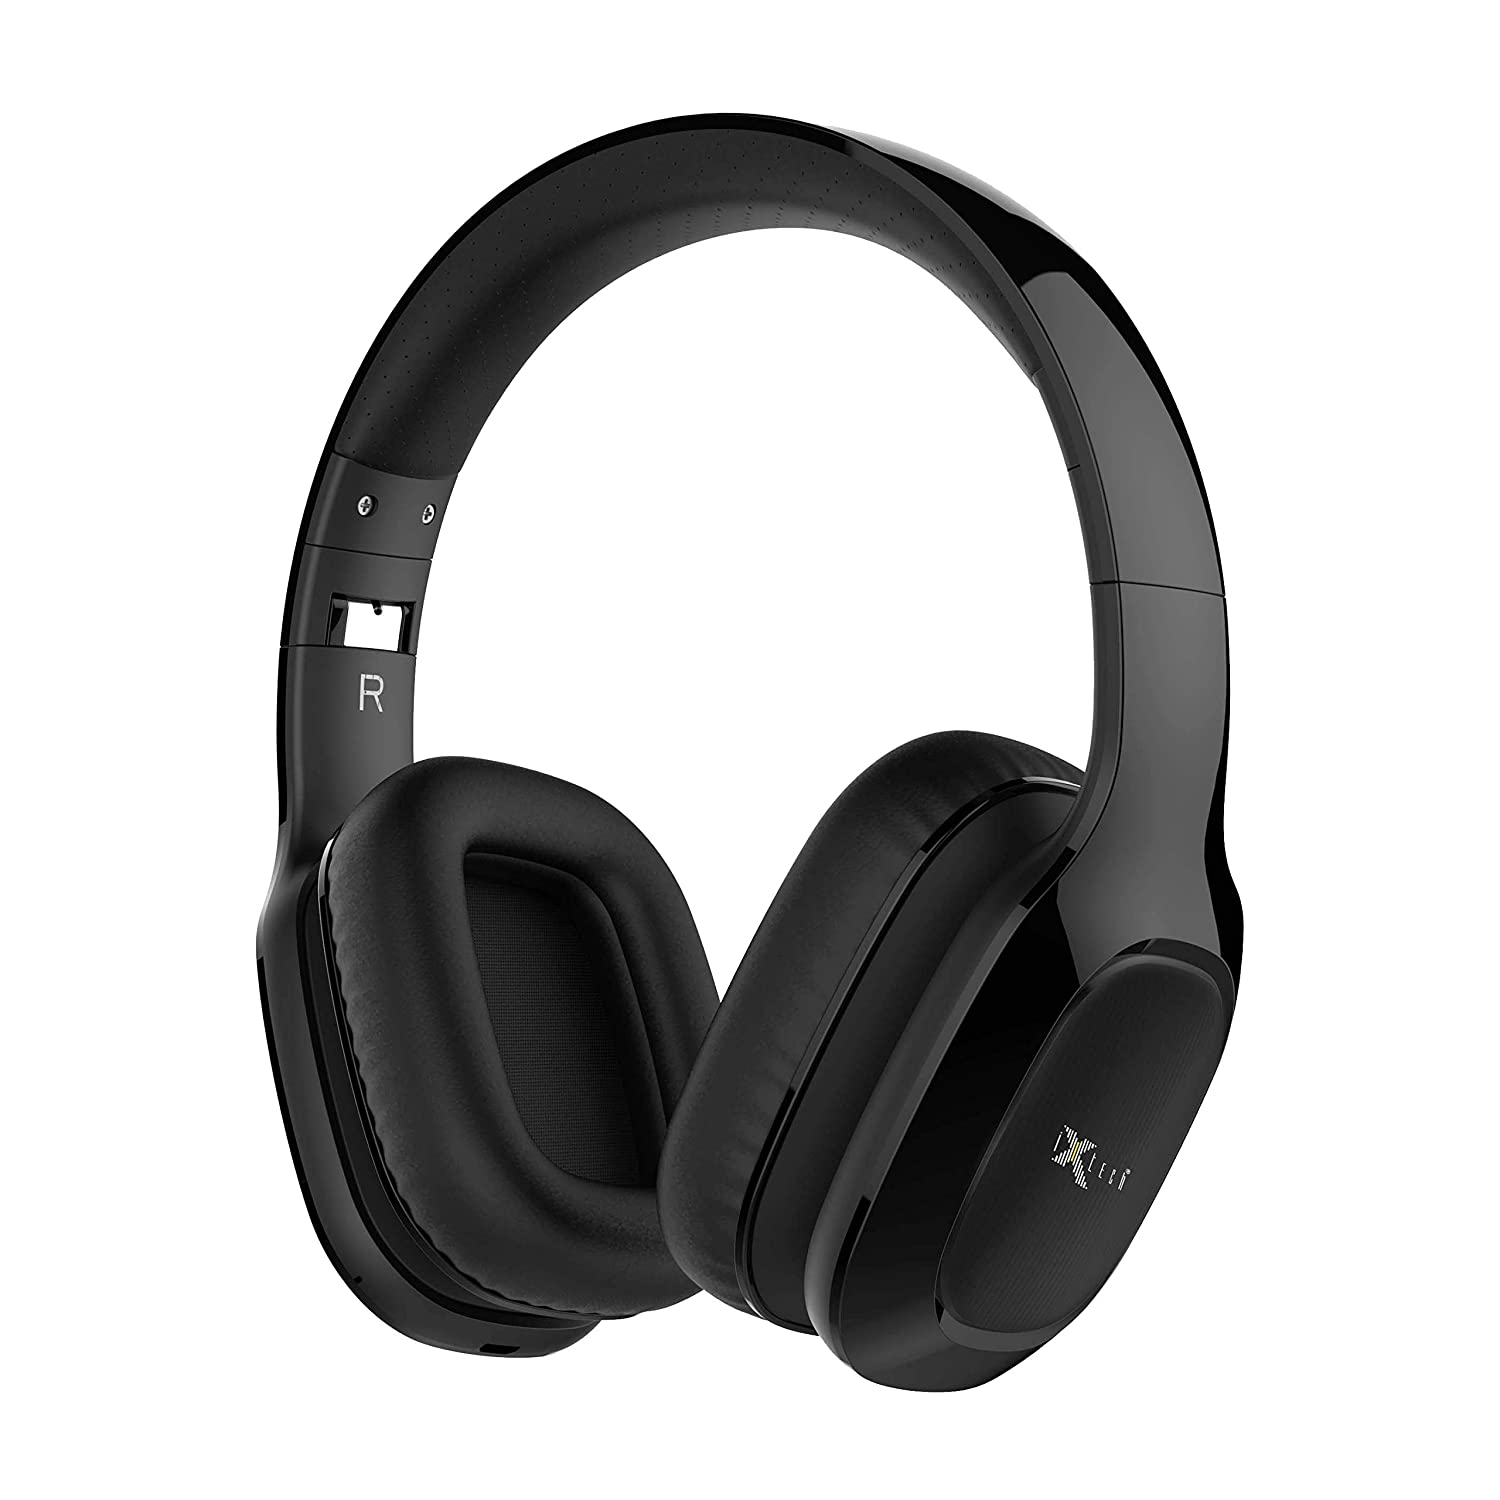 i-Xtech IX-E09 Bluetooth Headphones, Stereo Wireless Headsets Over Ear,Foldable Arm,Heavy Bass Soft and Comfortable Cover